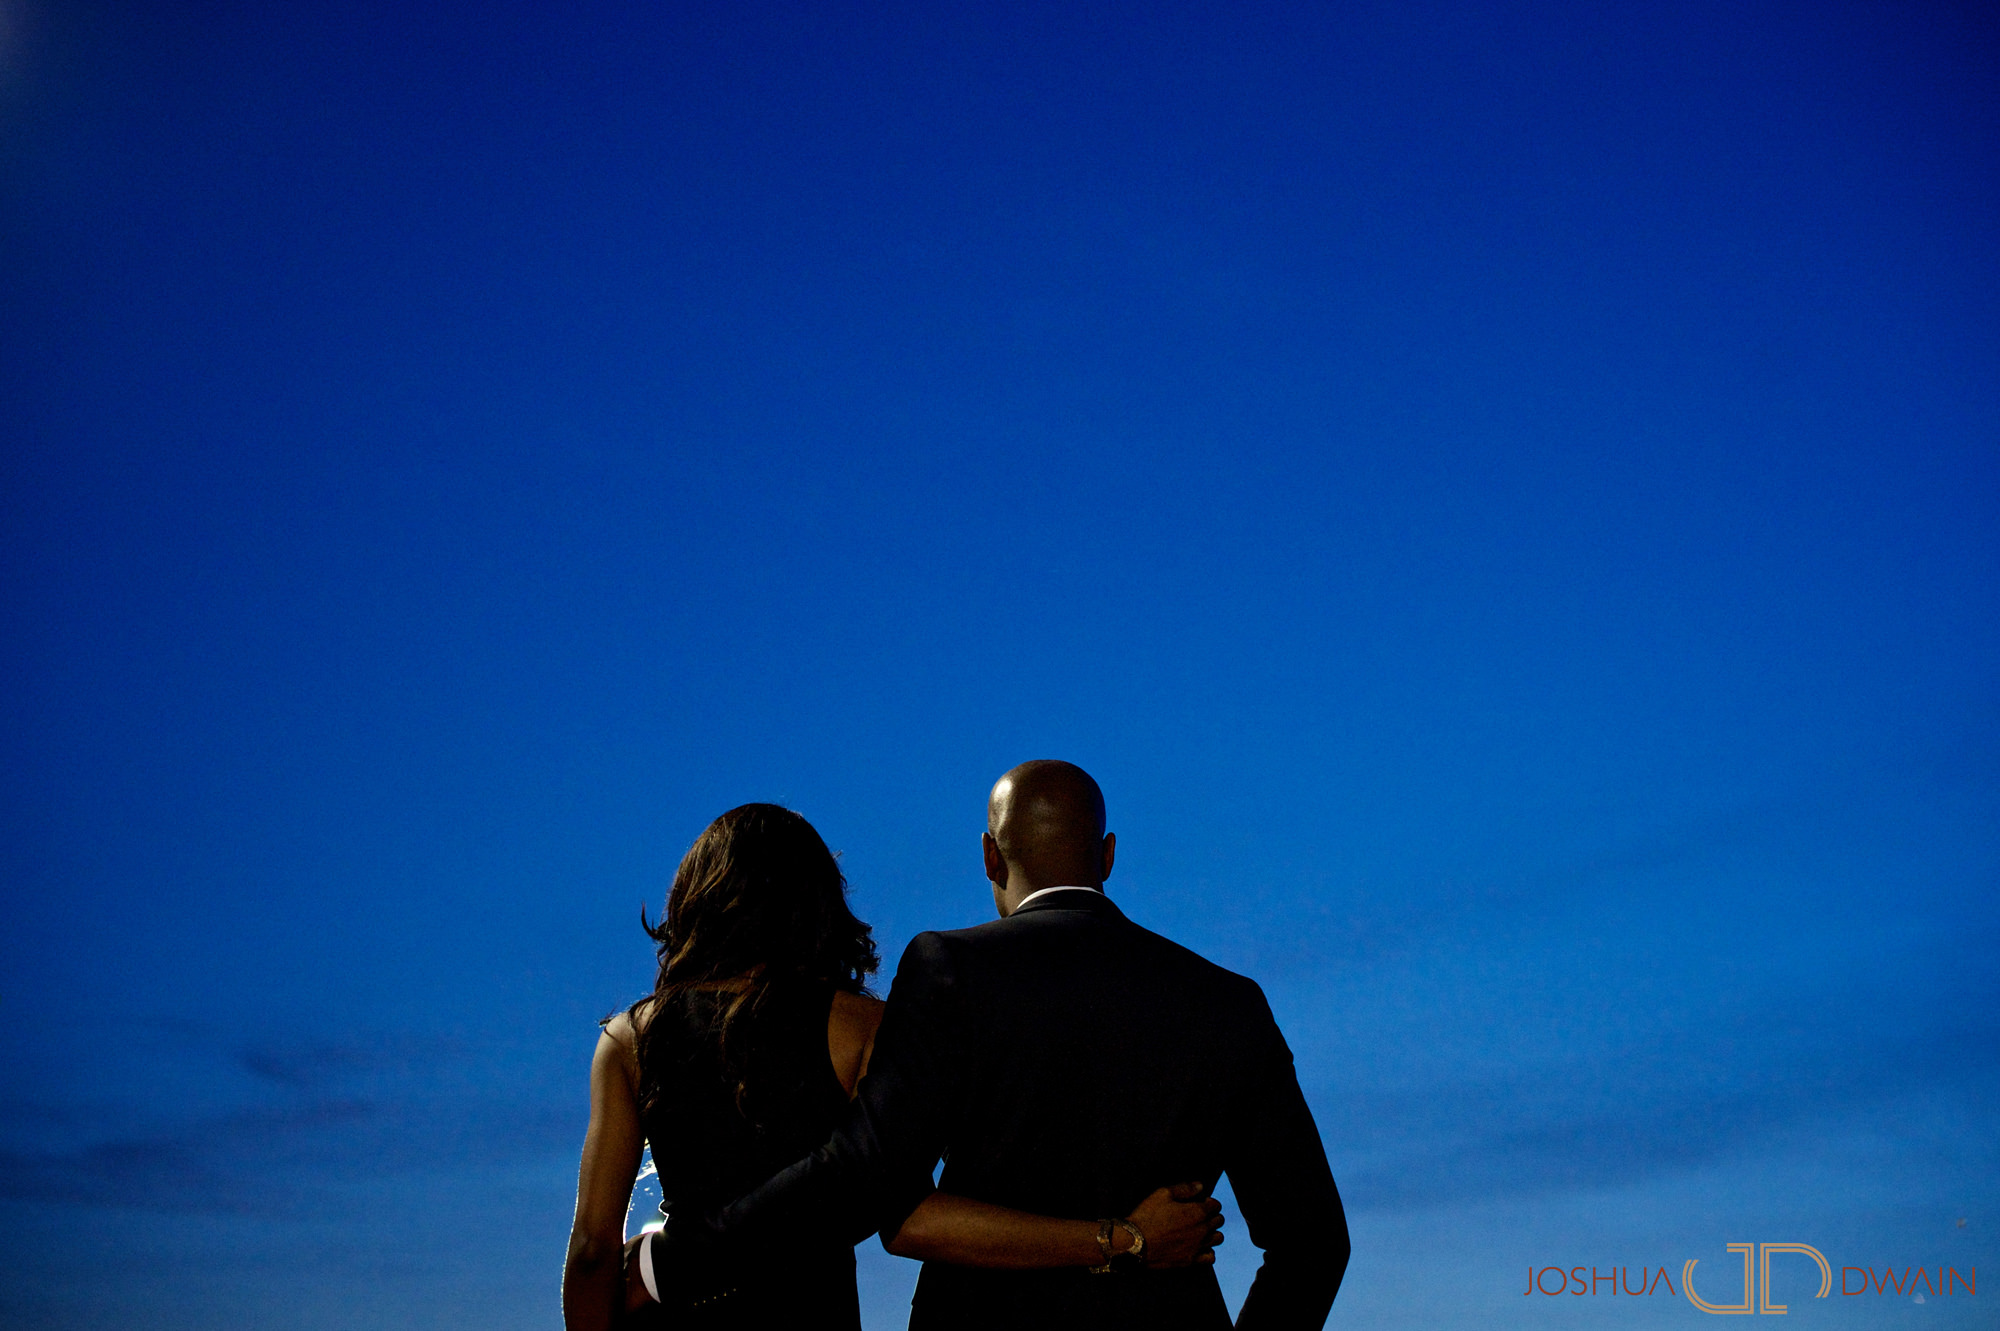 nkechi-curtis-013-liberty-state-park-new-jersey-engagement-photographer-joshua-dwain-2013-06-16_NC_110